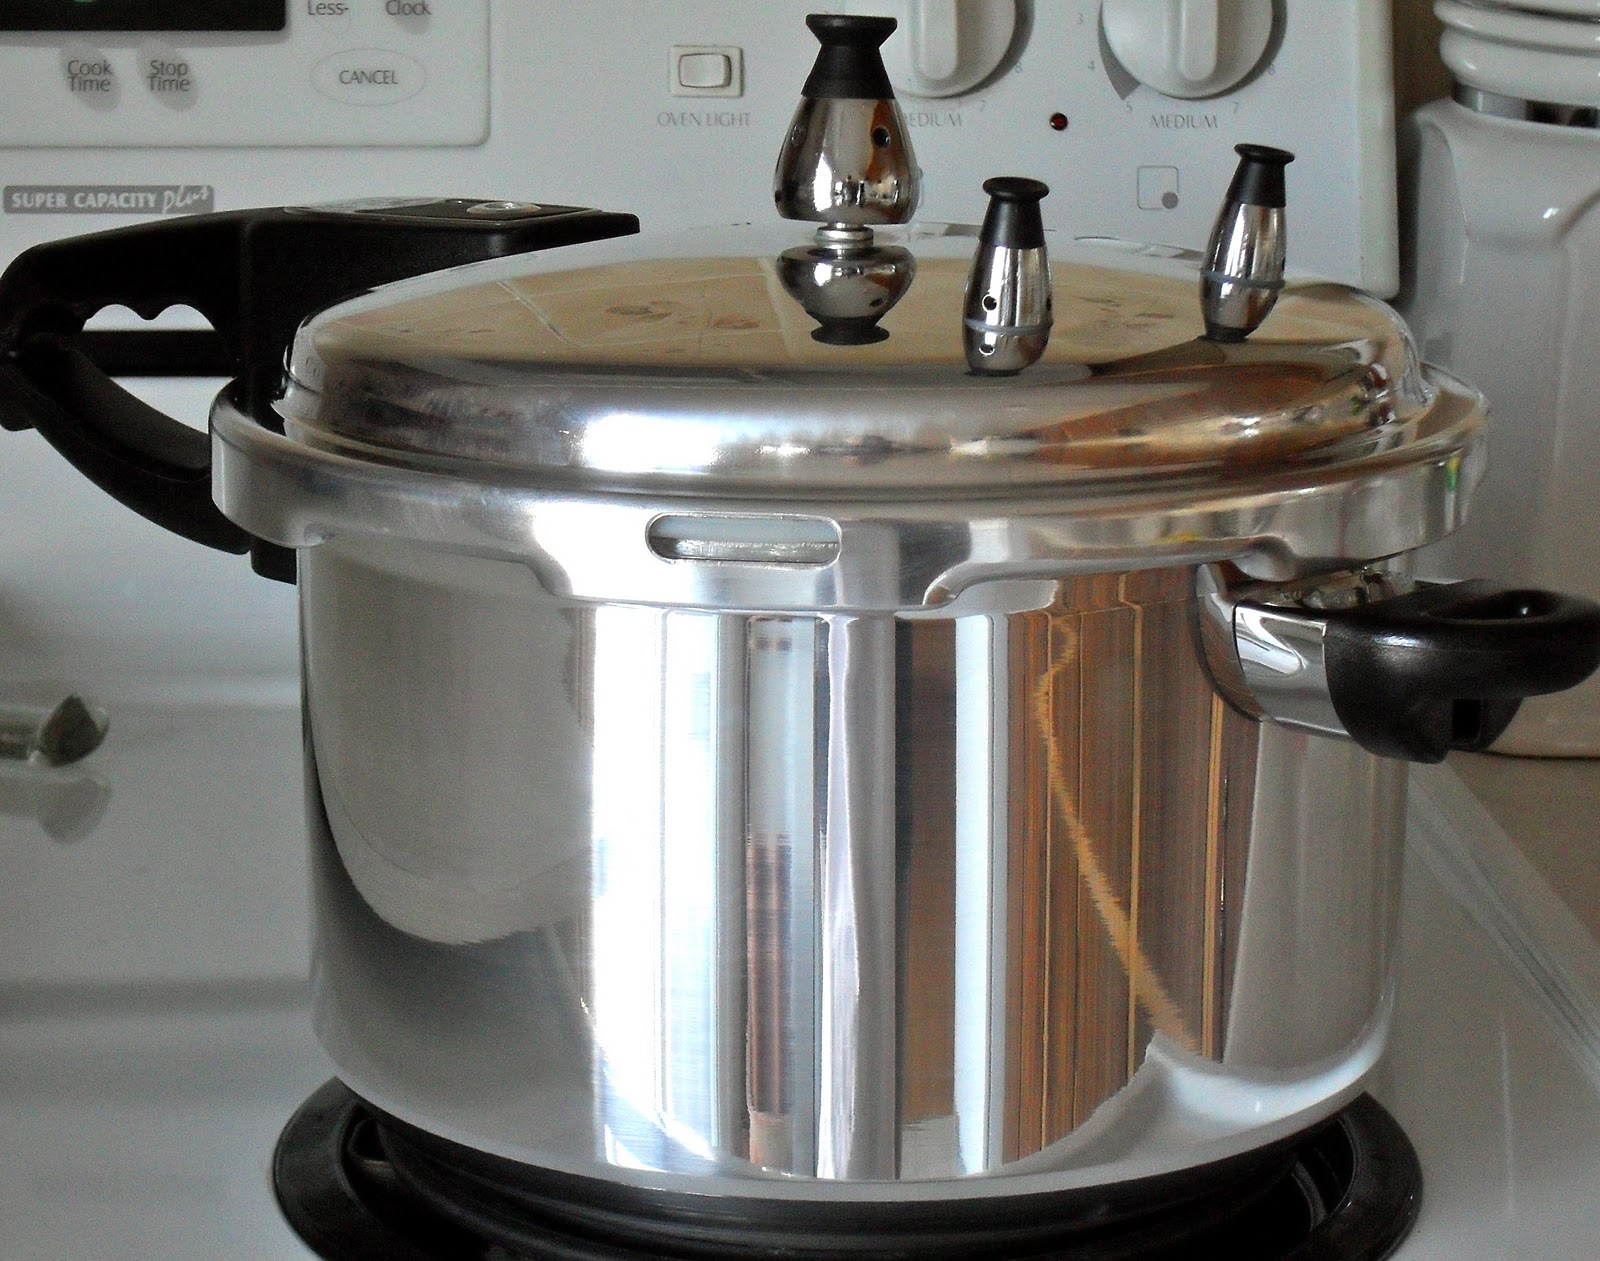 how to use a pressure cooker for the first time